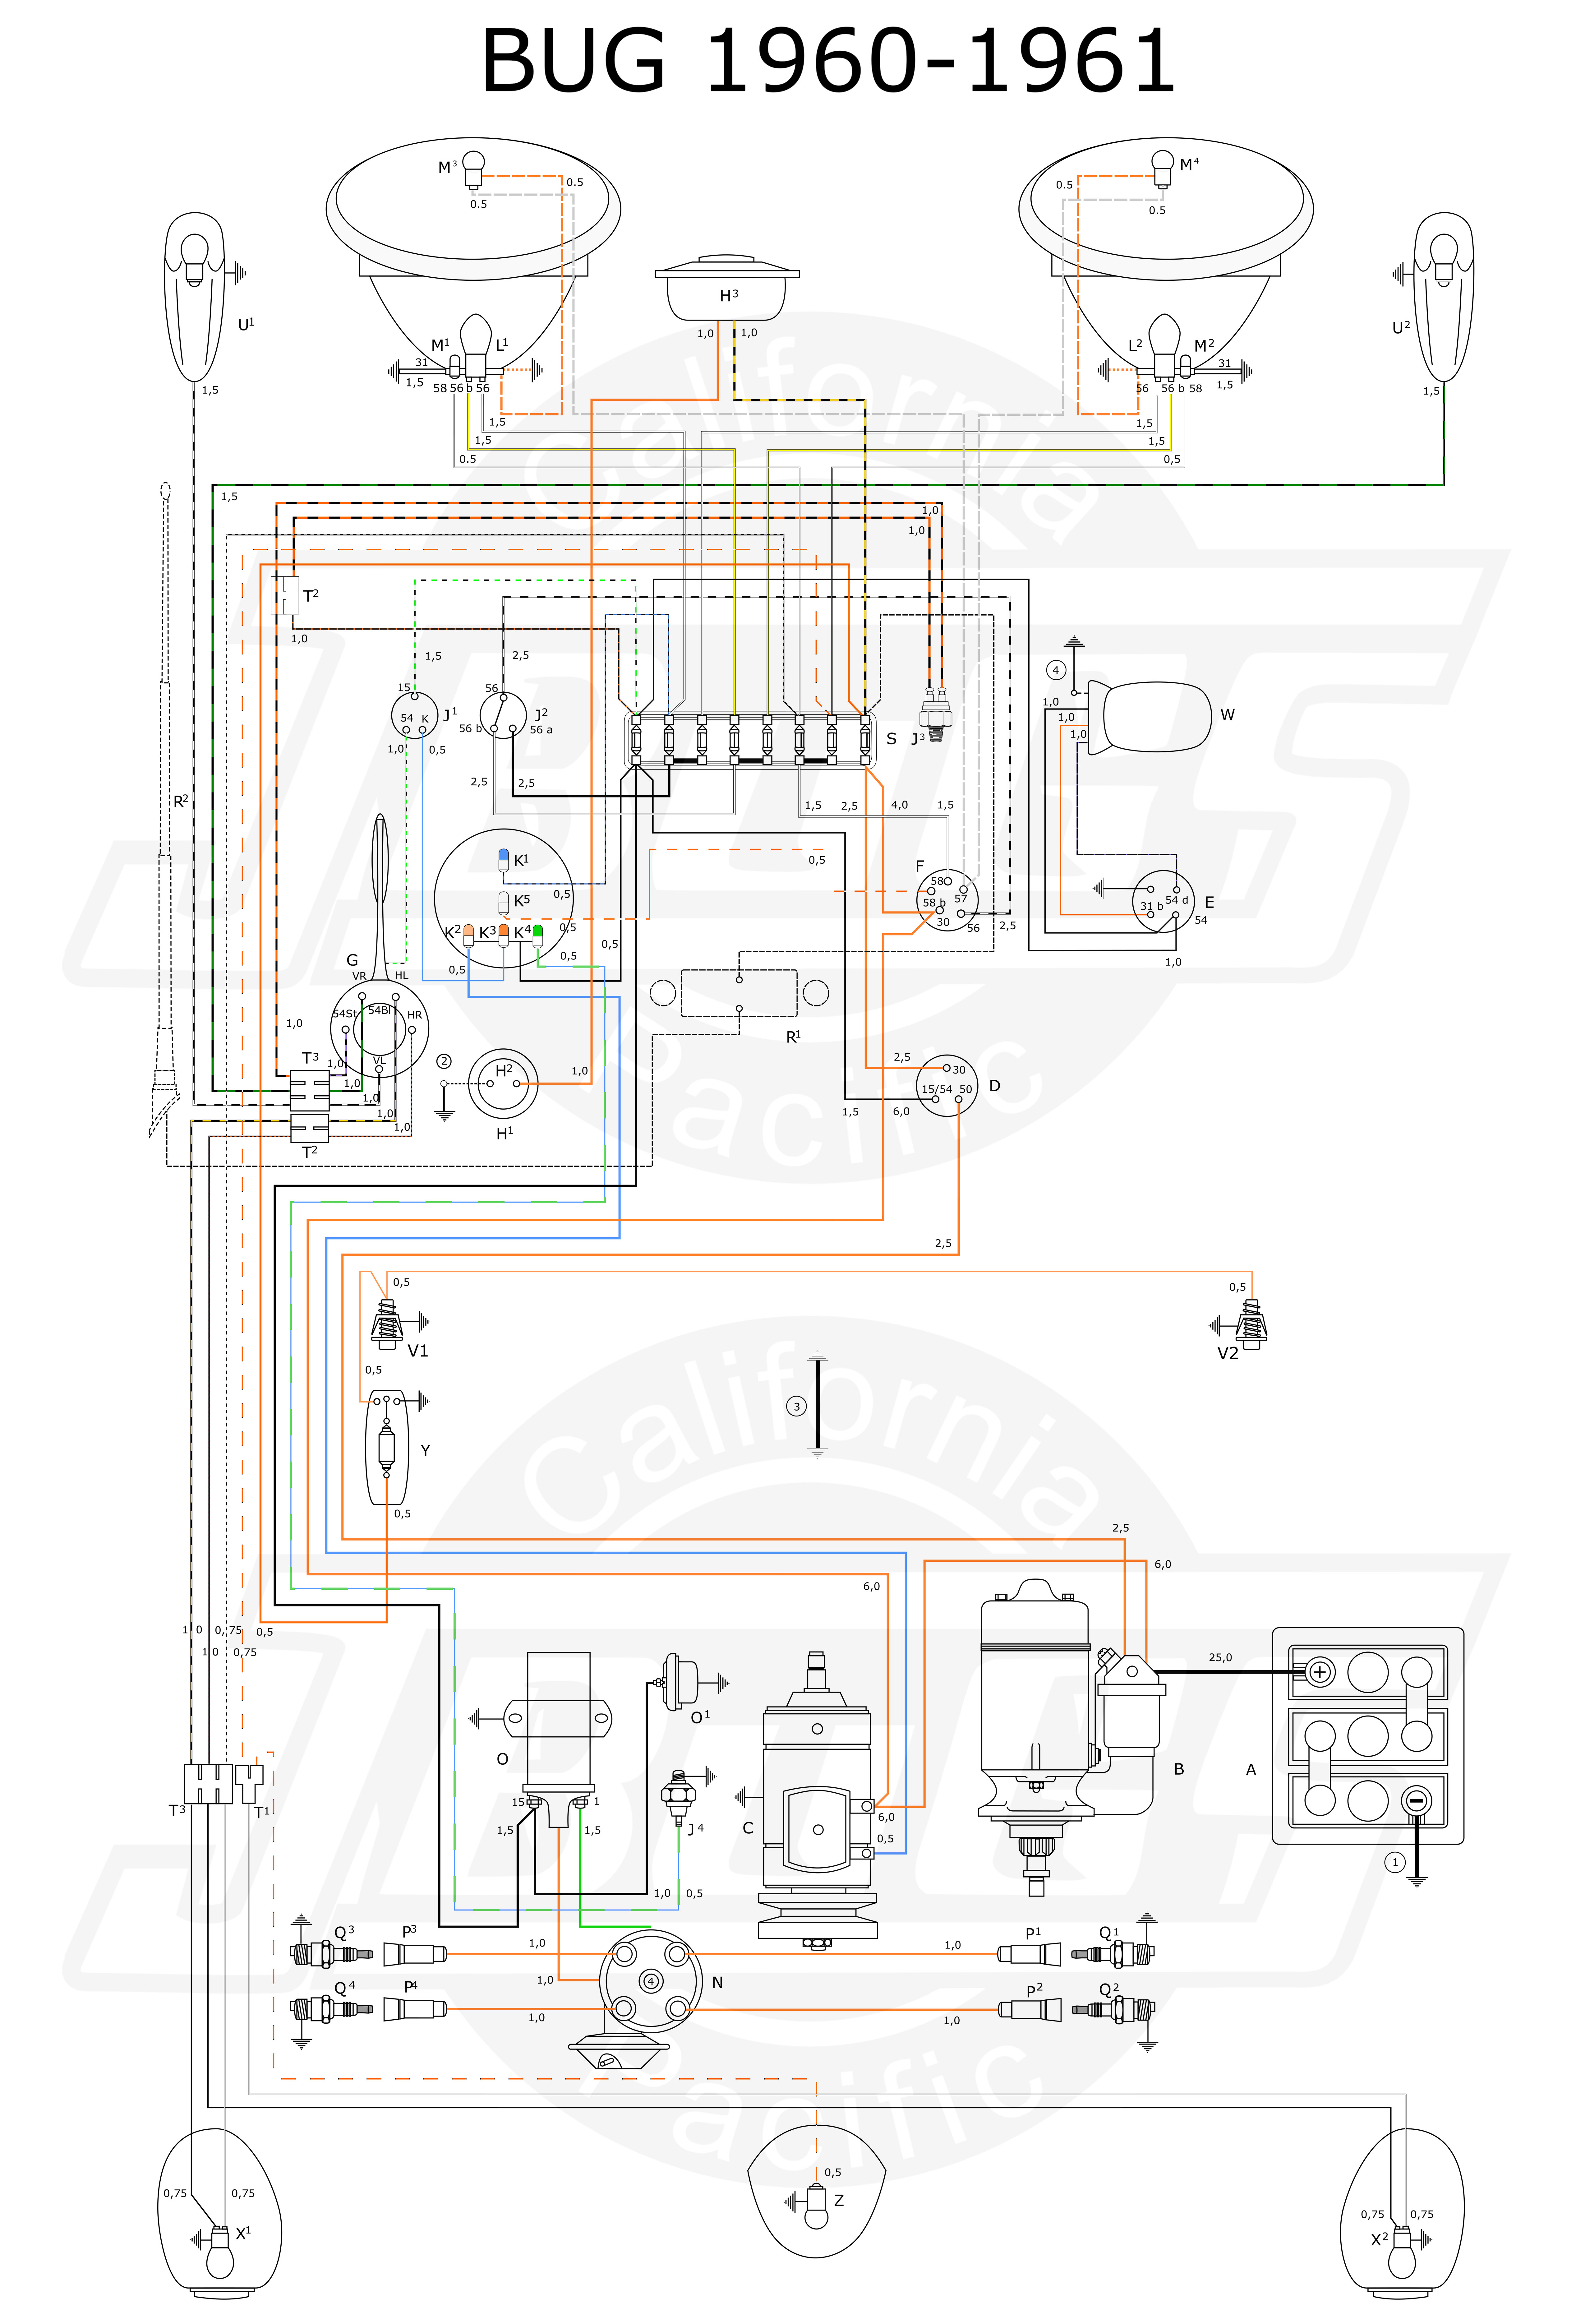 1967 vw beetle wiring harness free download wiring diagram schematicghia steering column diagram free download wiring diagram schematicvw tech article 1960 61 wiring diagram rh